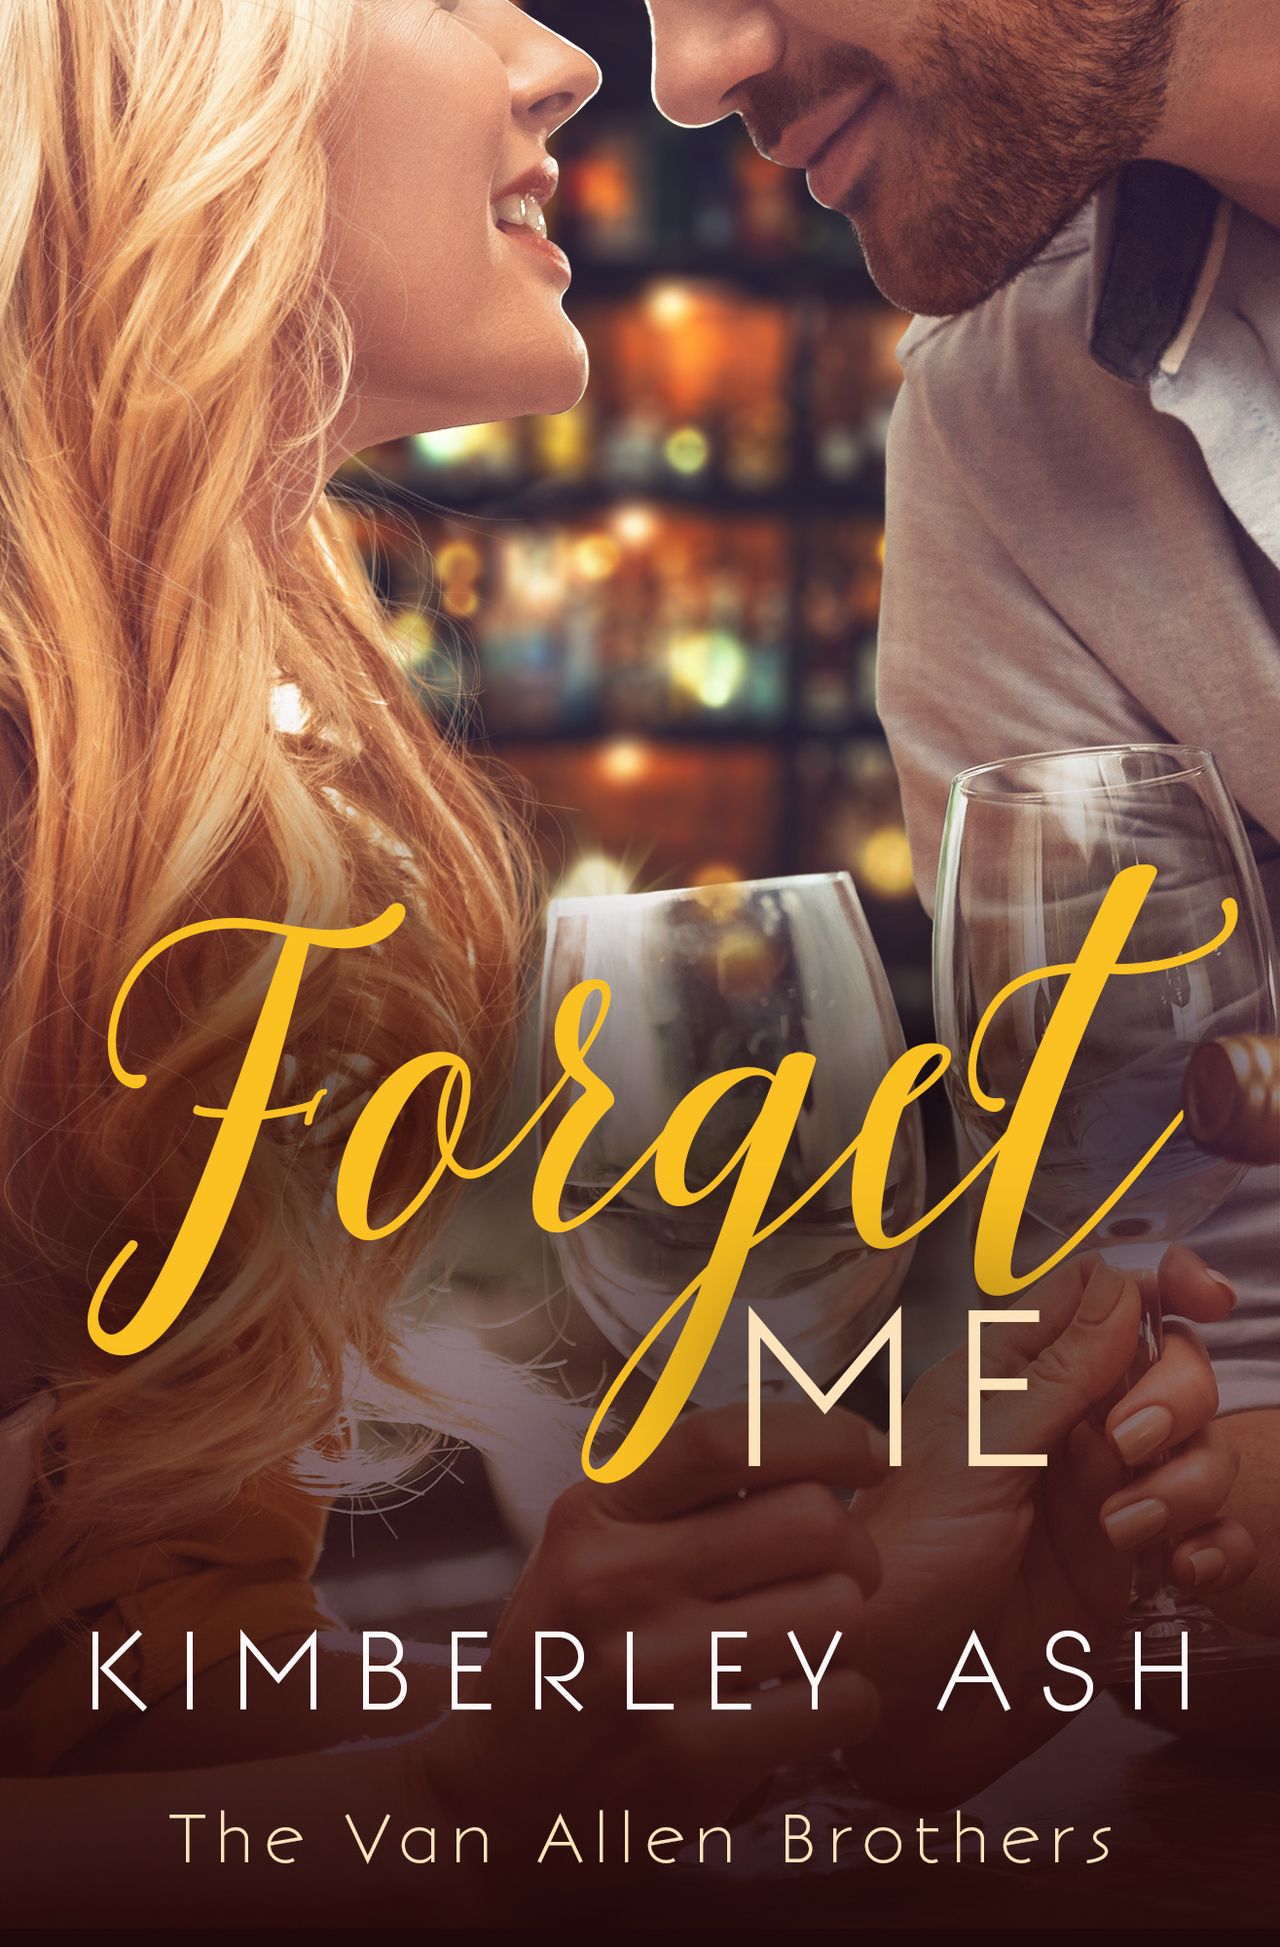 Forget me final for barnes and noble